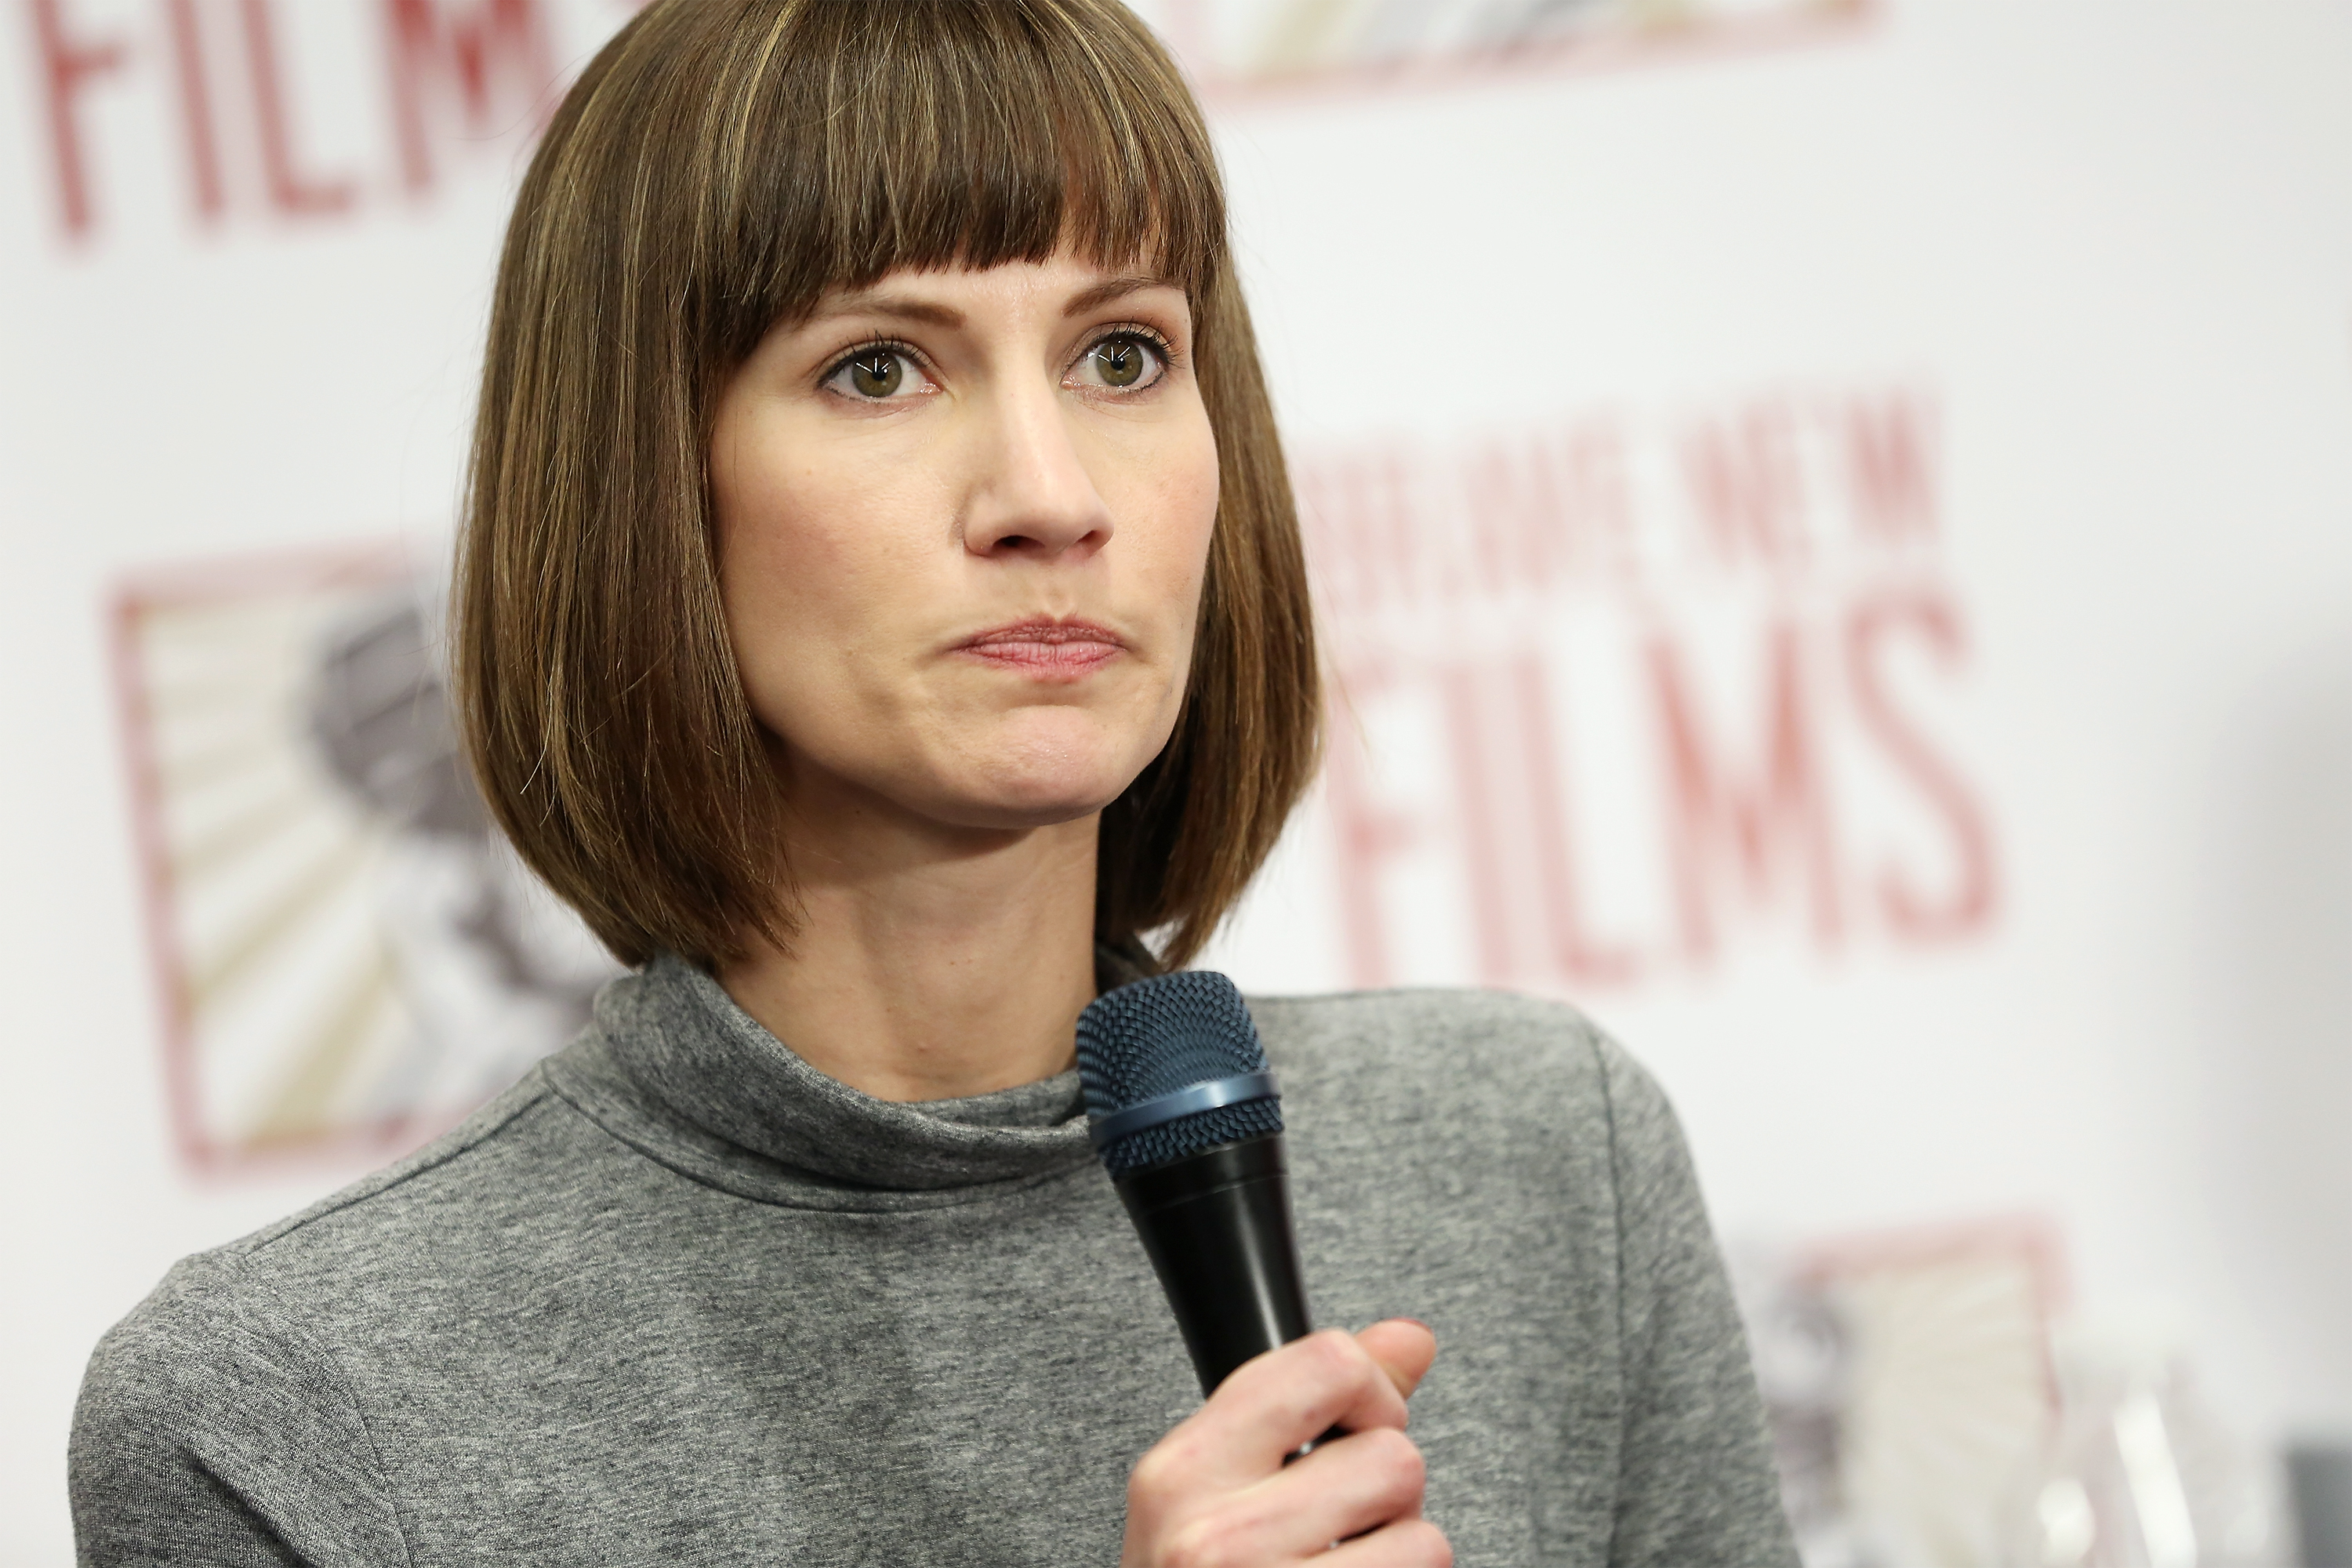 Rachel Crooks speaks during the press conference on Dec. 11, 2017. (Monica Schipper)